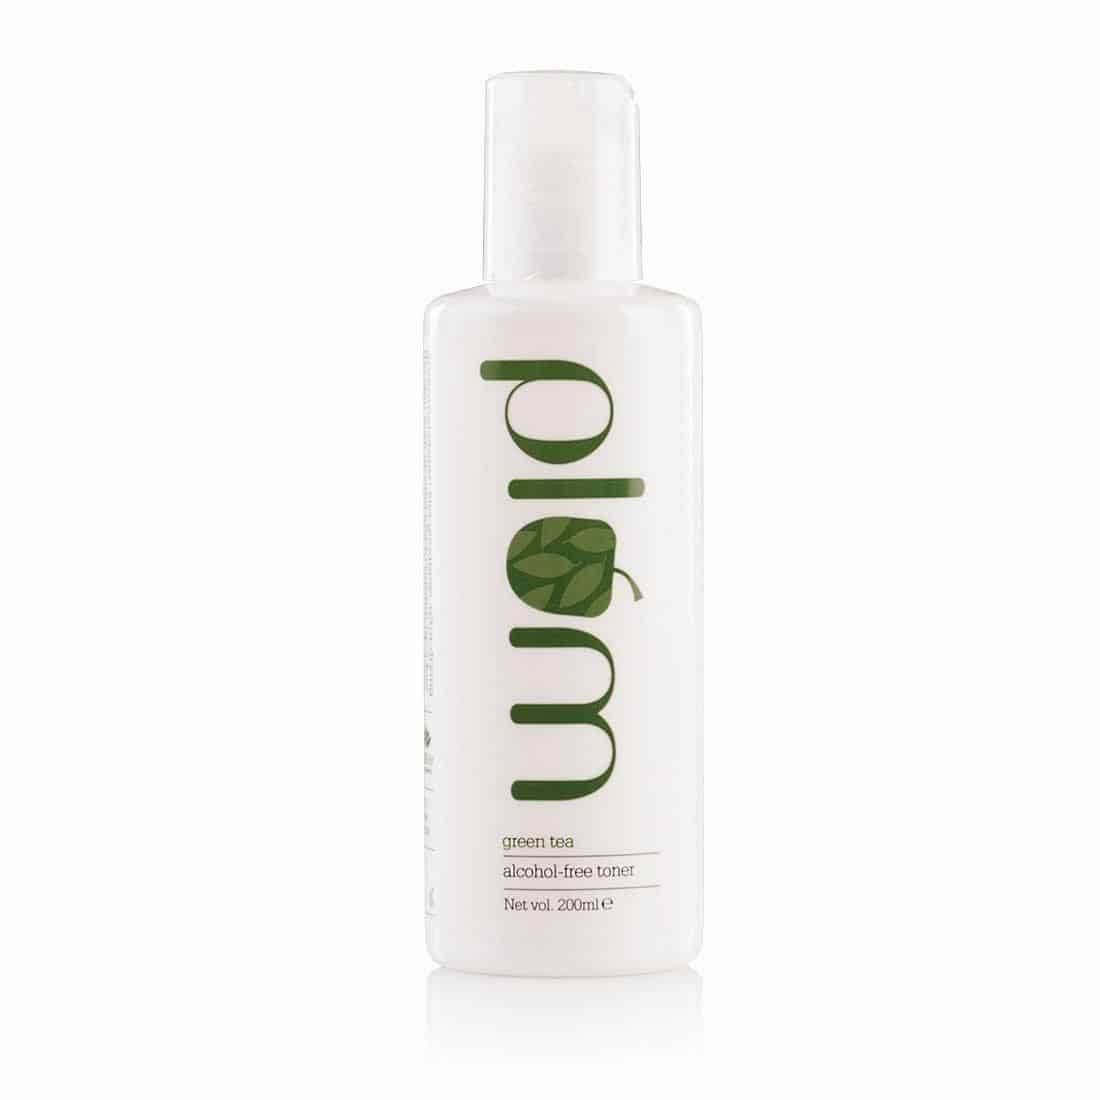 top toners for oily skin in India